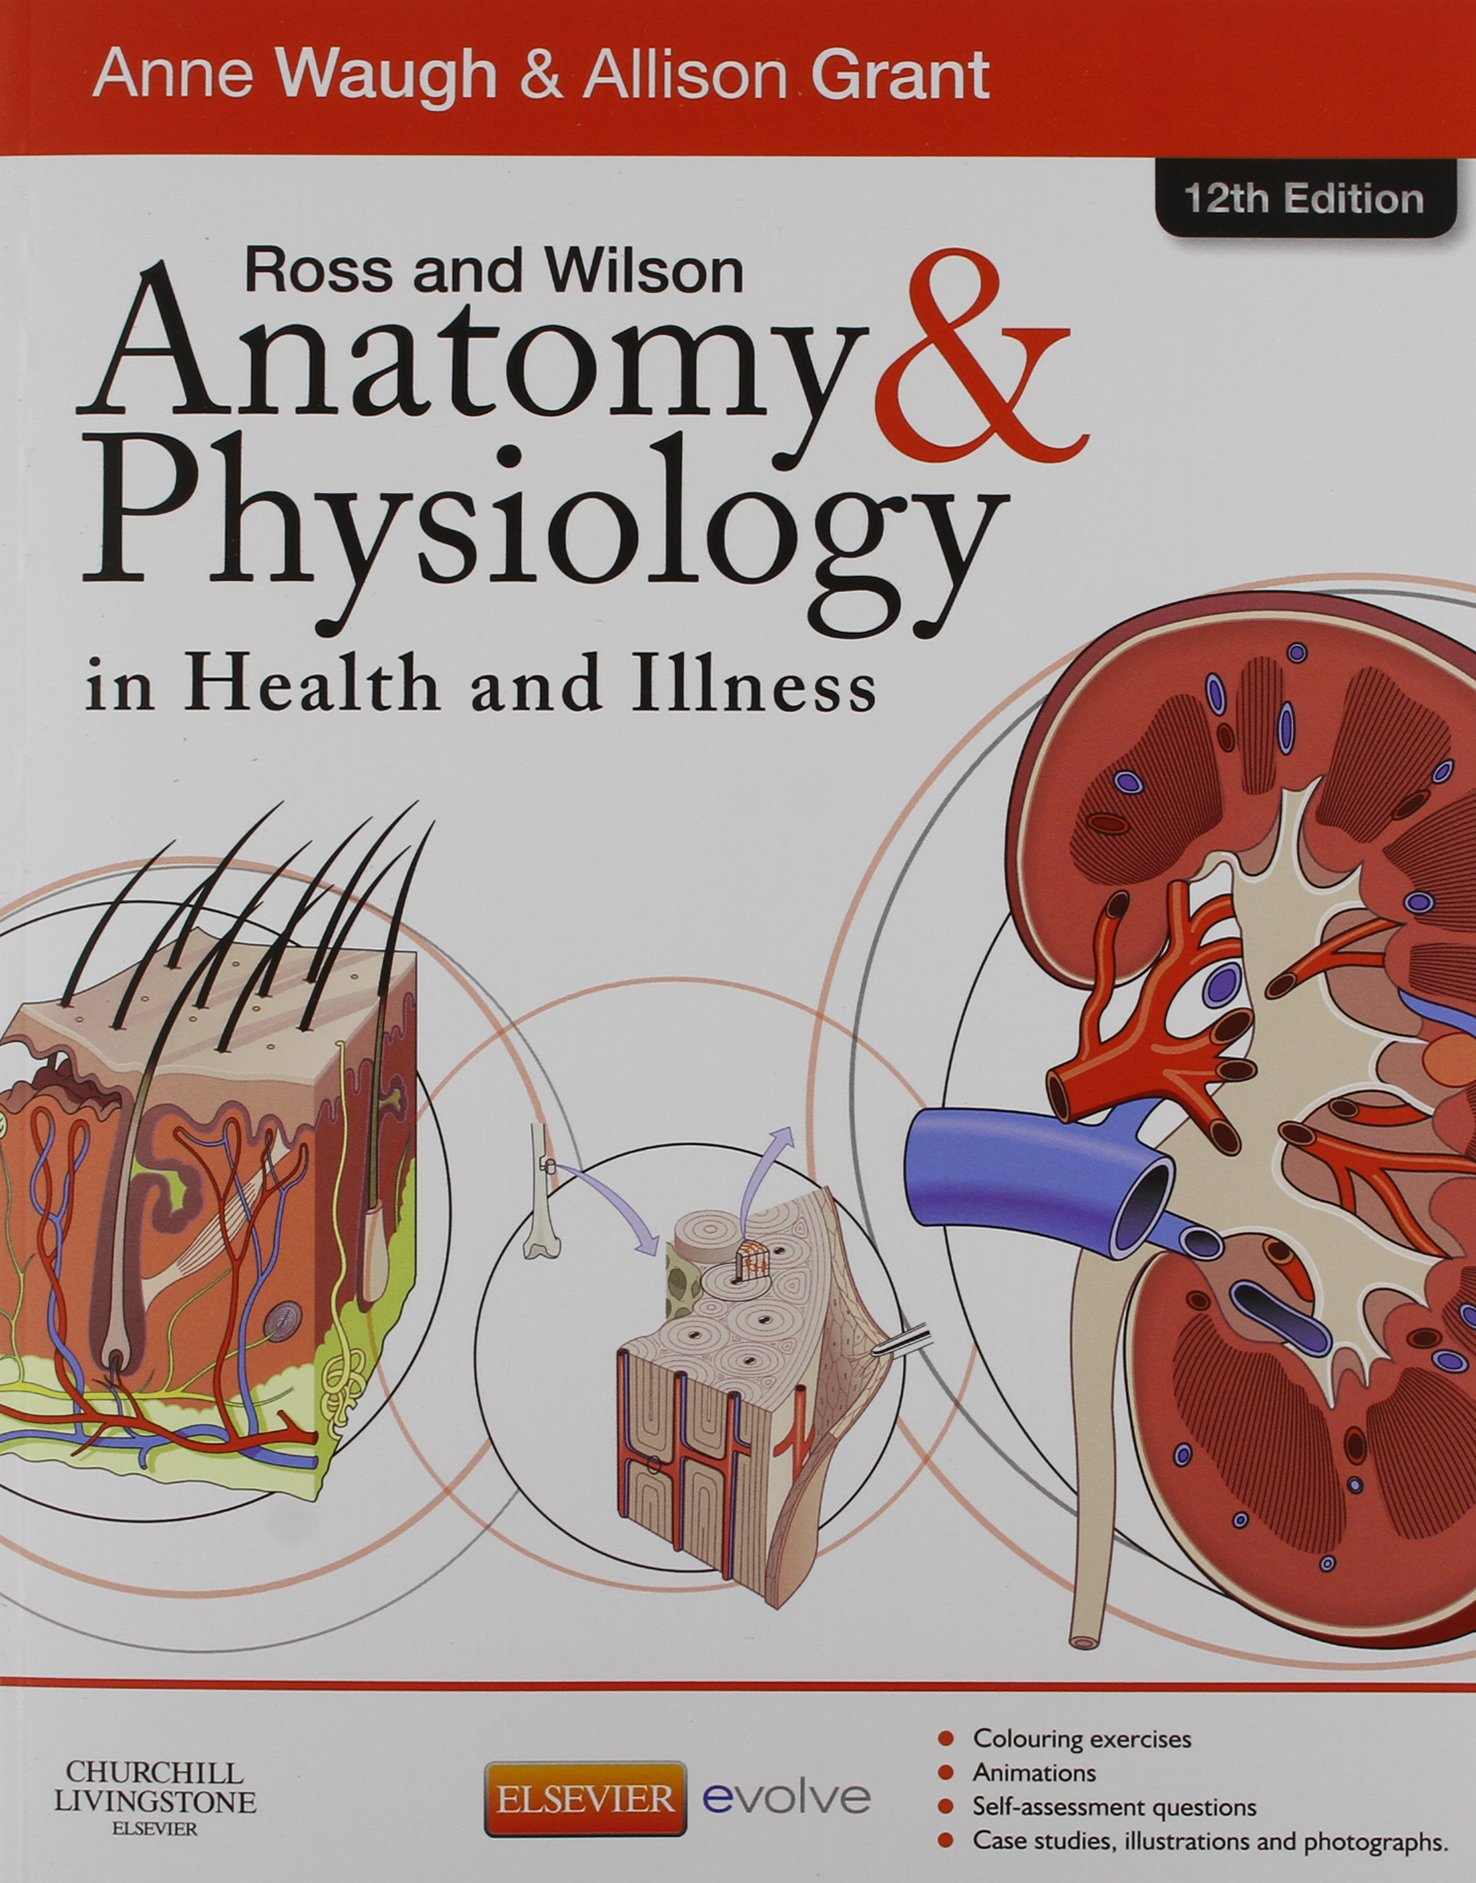 Anatomy pdf and and physiology wilson ross